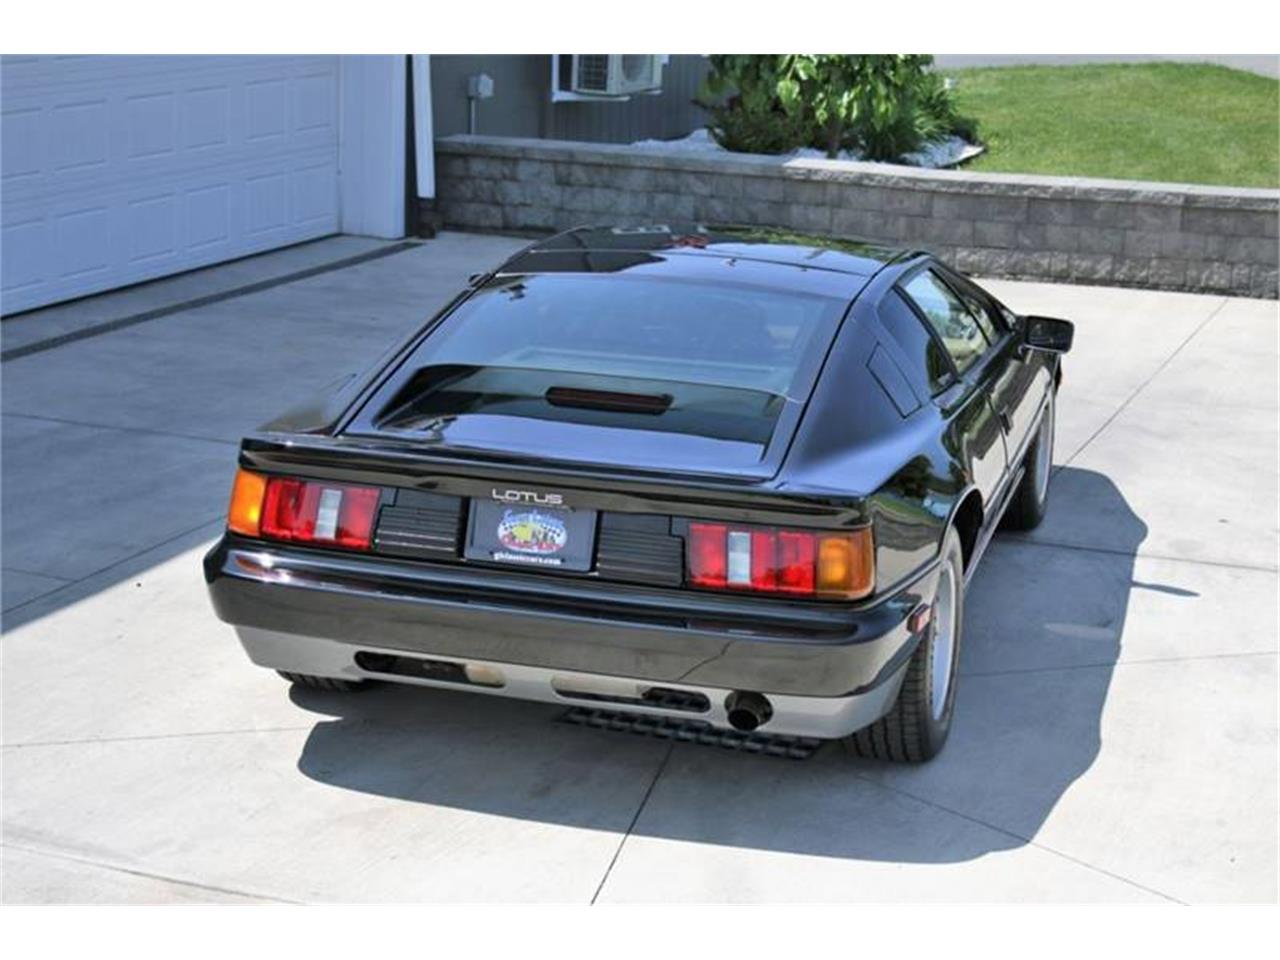 Large Picture of '88 Lotus Esprit located in New York Offered by Great Lakes Classic Cars - QE3Z